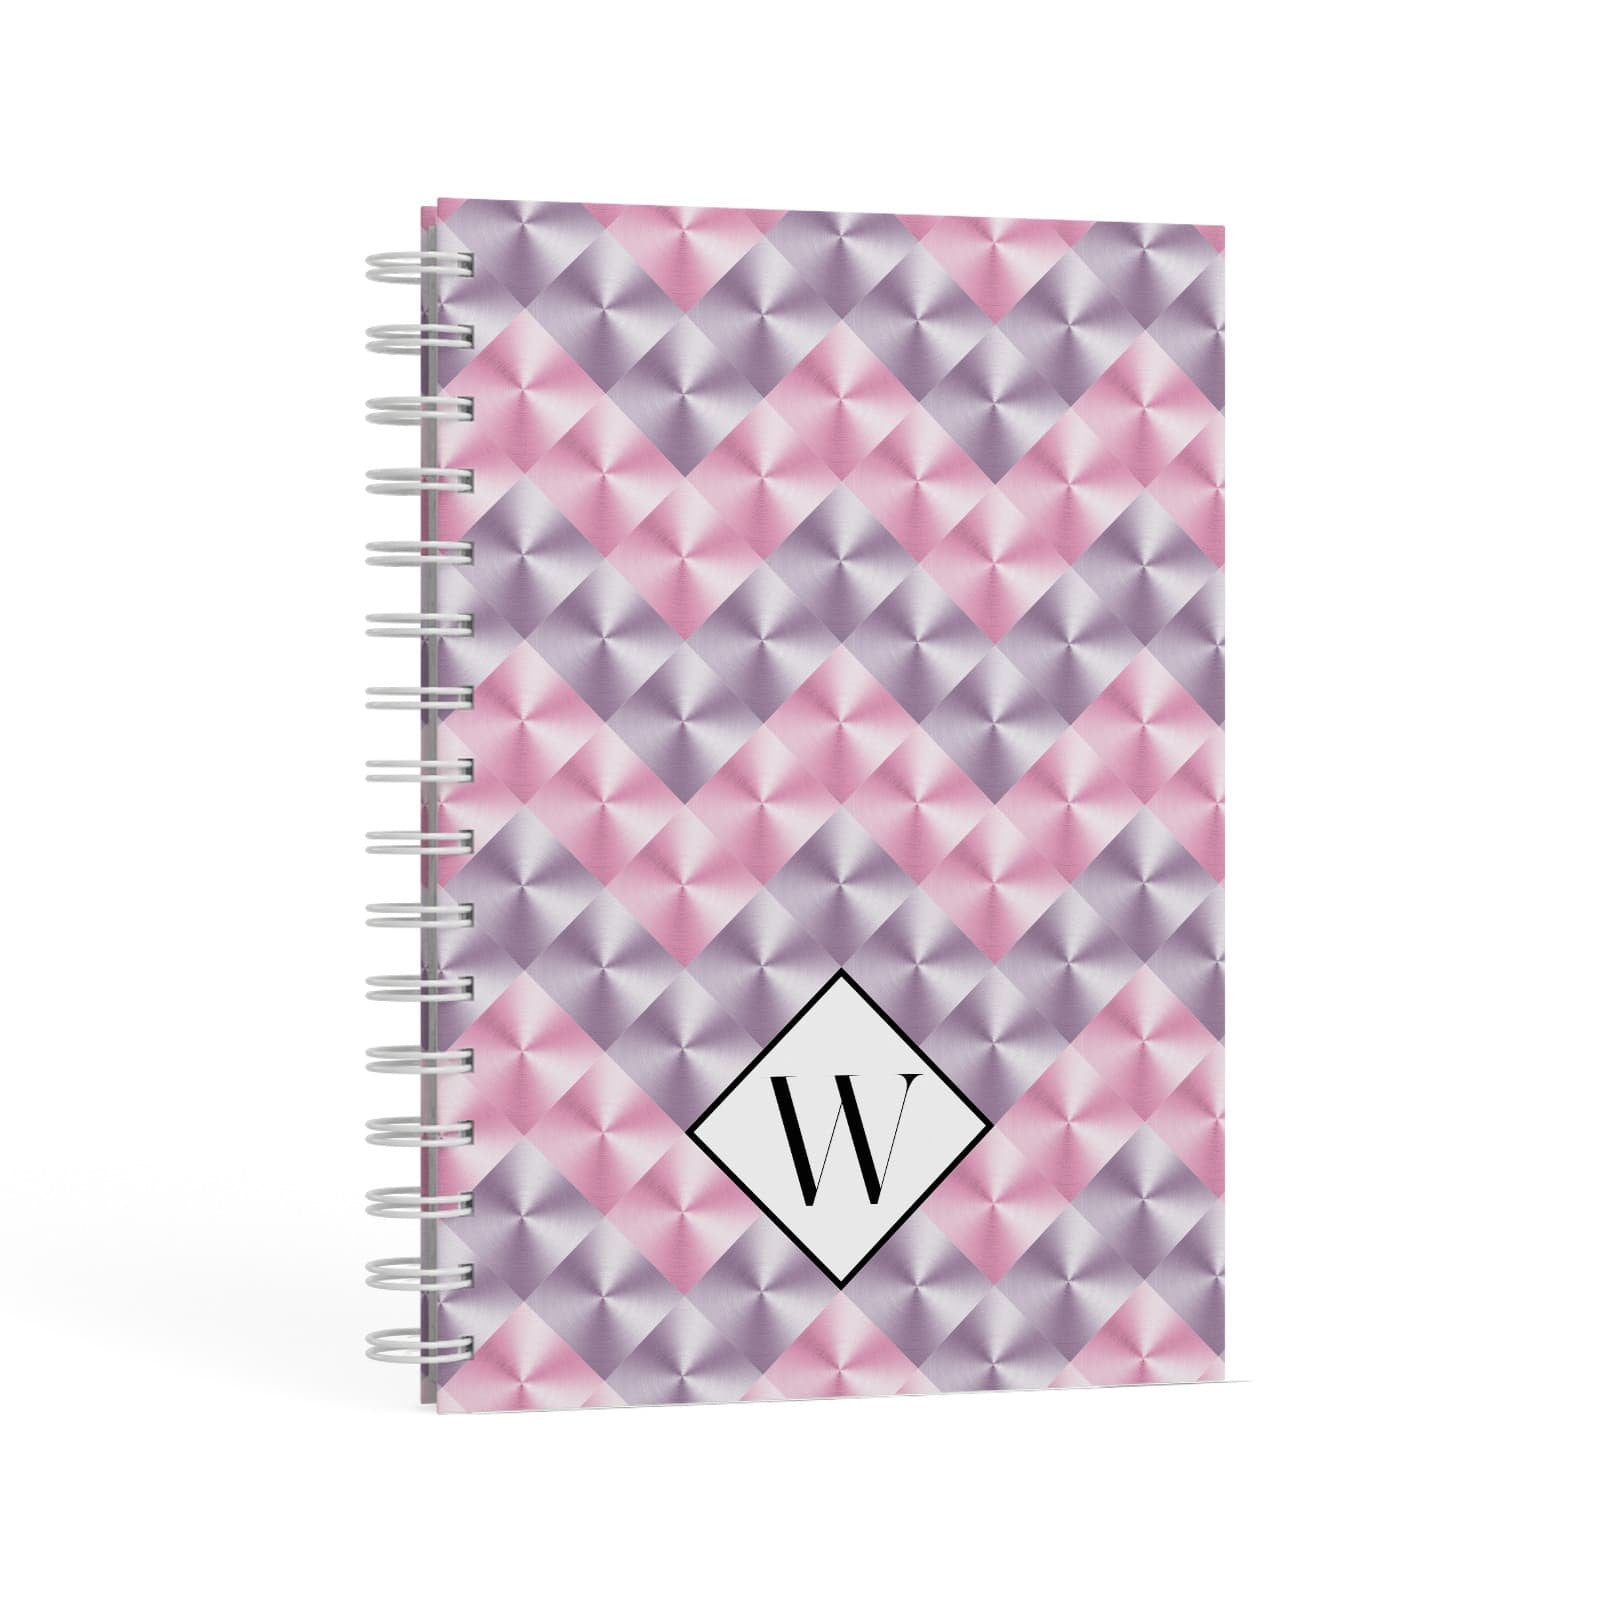 Personalised Mother Of Pearl Monogram Letter A5 Hardcover Notebook Second Side View